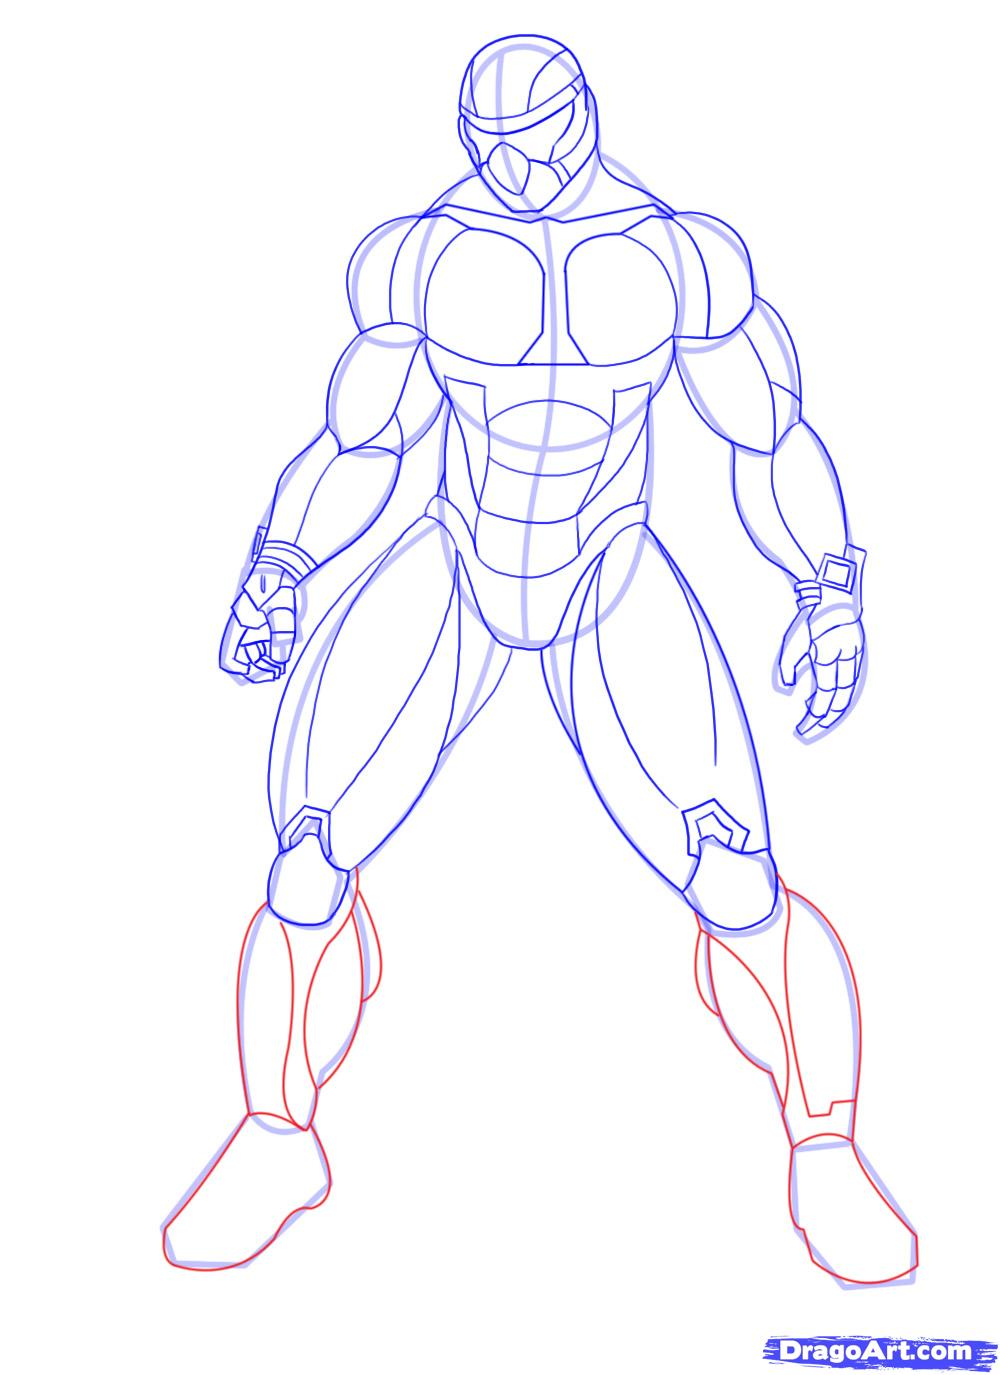 1000x1375 How To Draw Crysis, Draw Nanosuit, Step By Step, Video Game